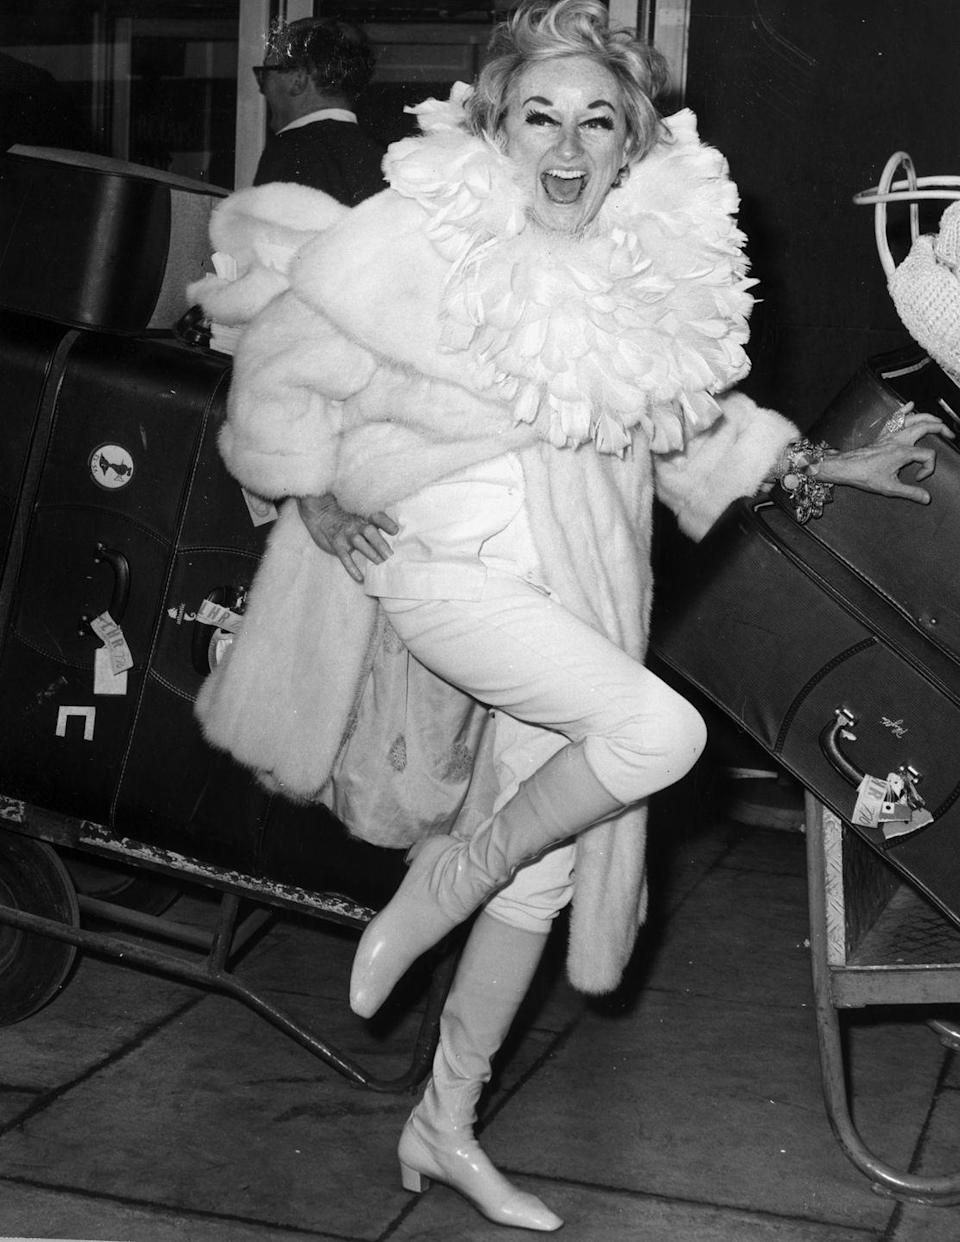 <p><strong>Phyllis Diller, 1968</strong><strong>:</strong> When this photo was taken, American comedian Phyllis Diller had just arrived at London's Heathrow airport with THIRTY-FIVE suitcases. Which is perhaps why she's wearing an absurd amount of fabric around her neck...so she doesn't have to check a 36th bag? </p>